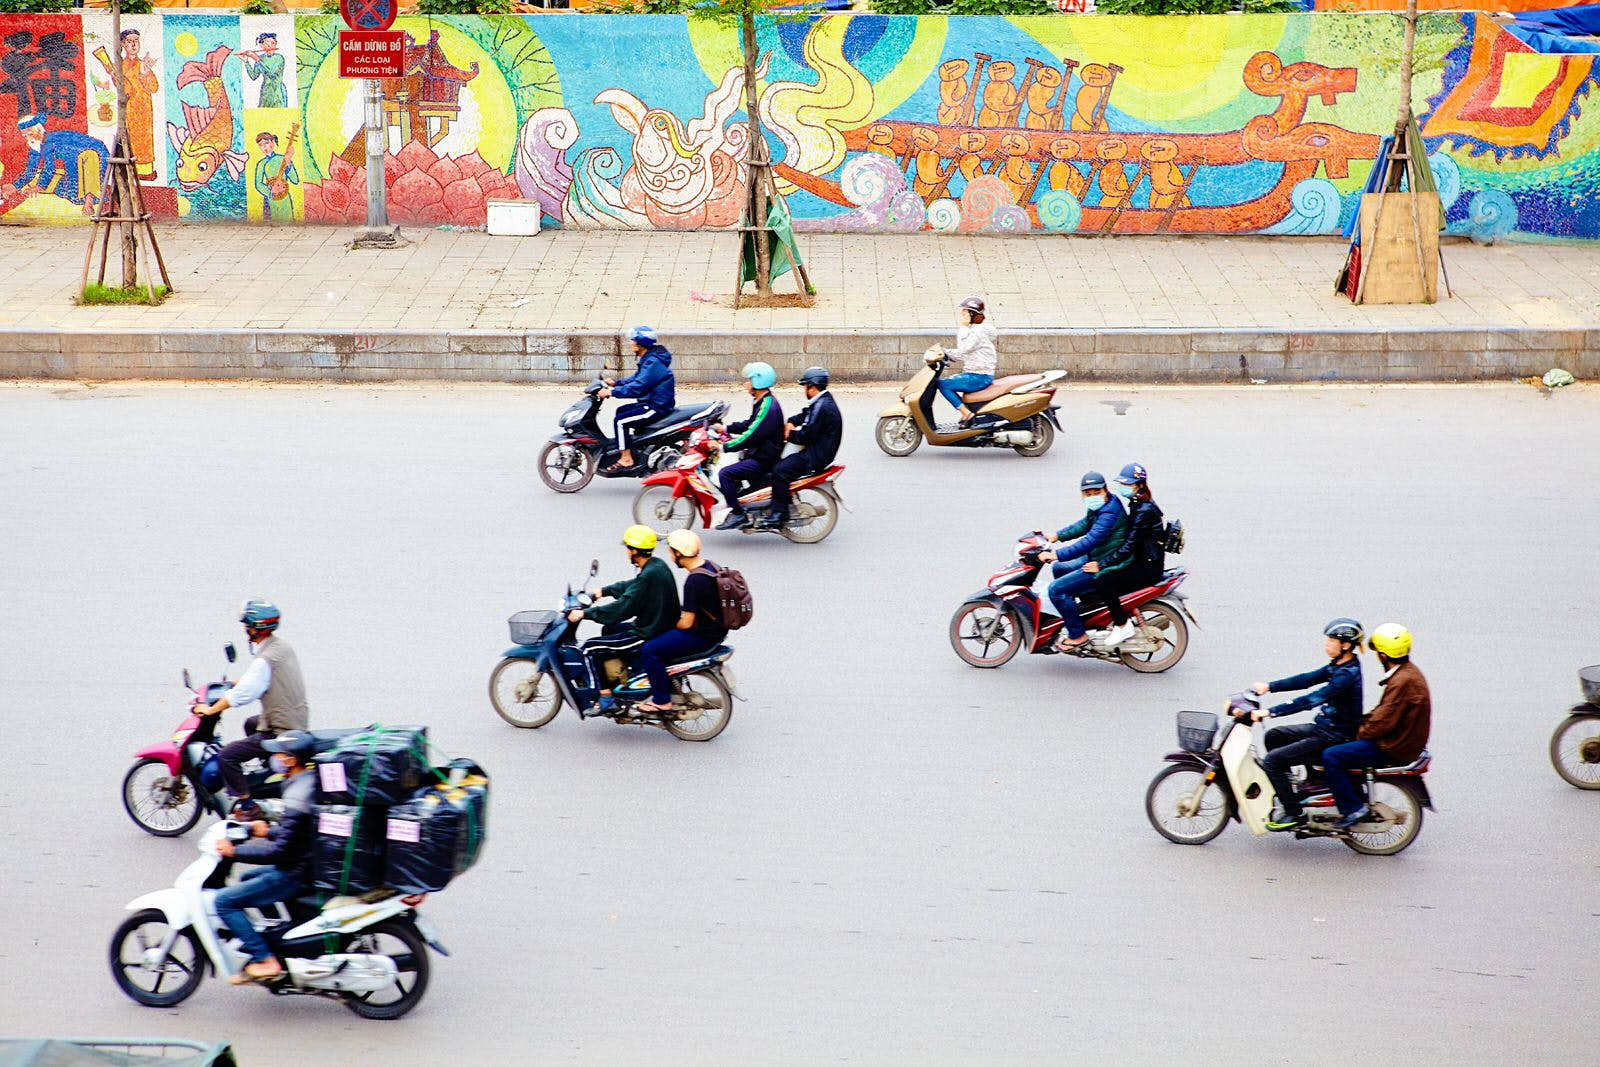 Aerial view of a selection of mopeds driving down a concrete street in Hanoi